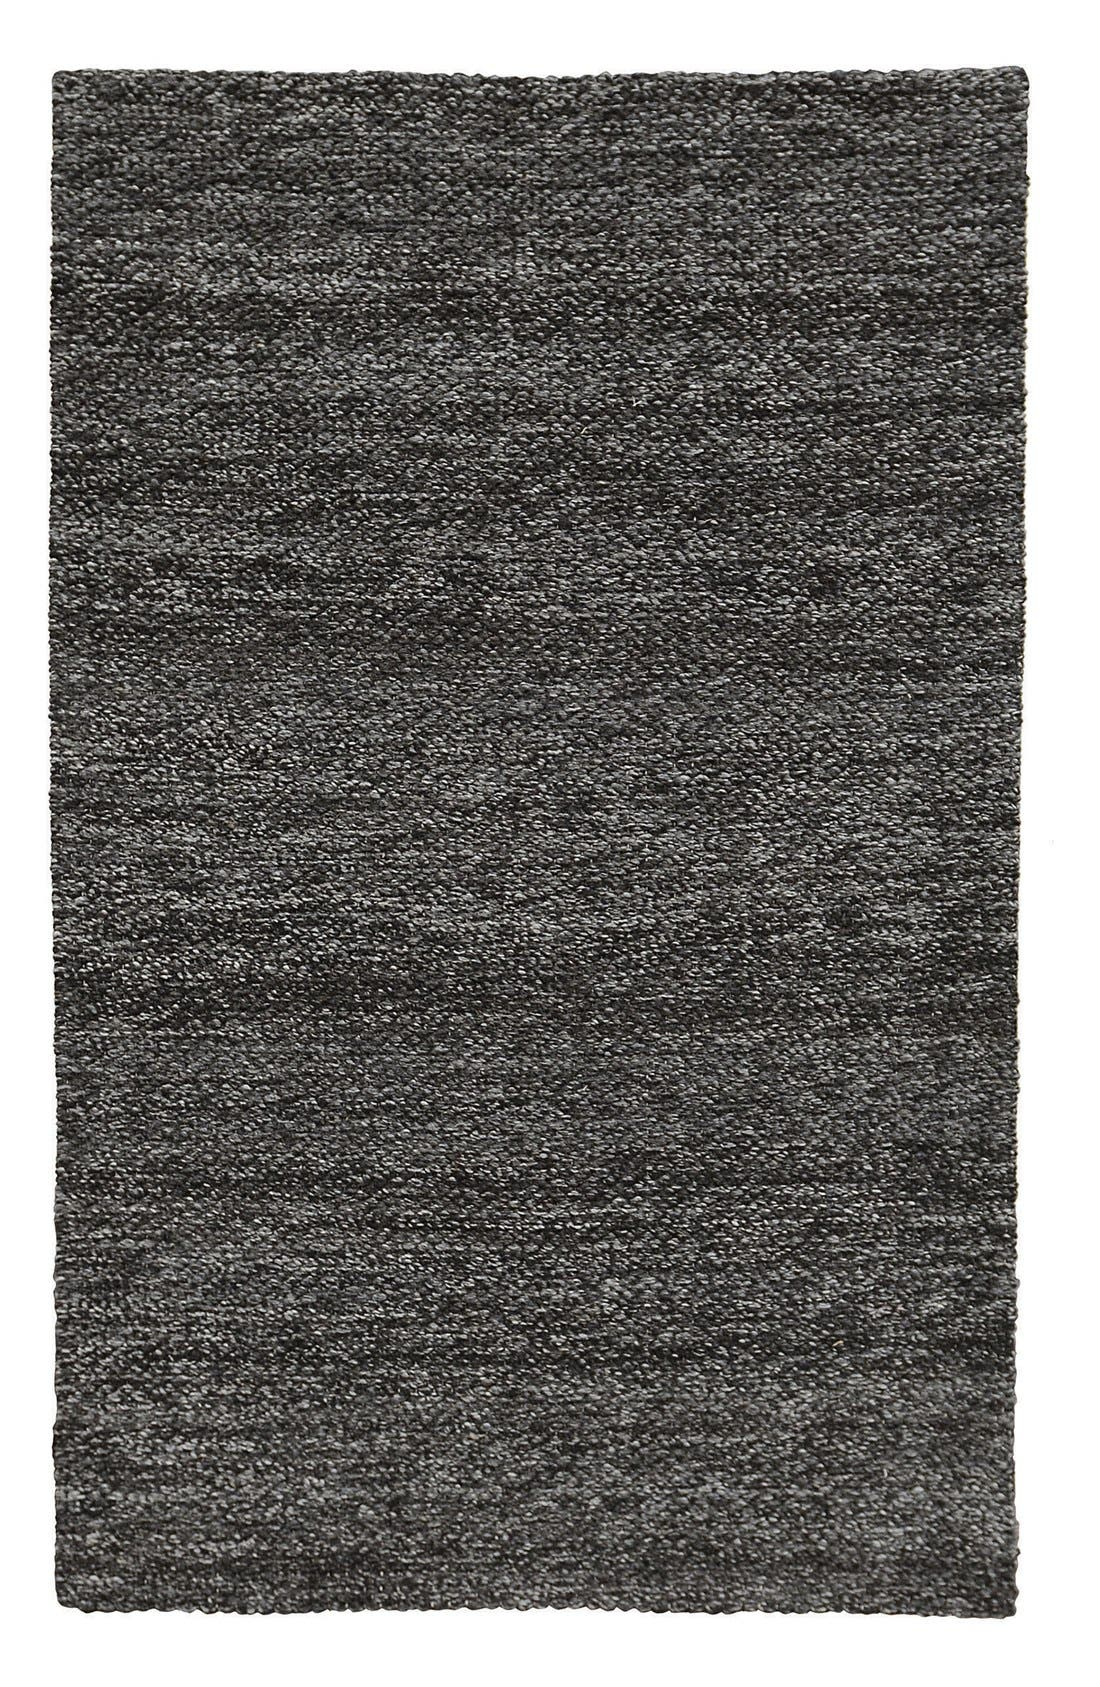 Heathered Wool Rug,                             Main thumbnail 1, color,                             Black